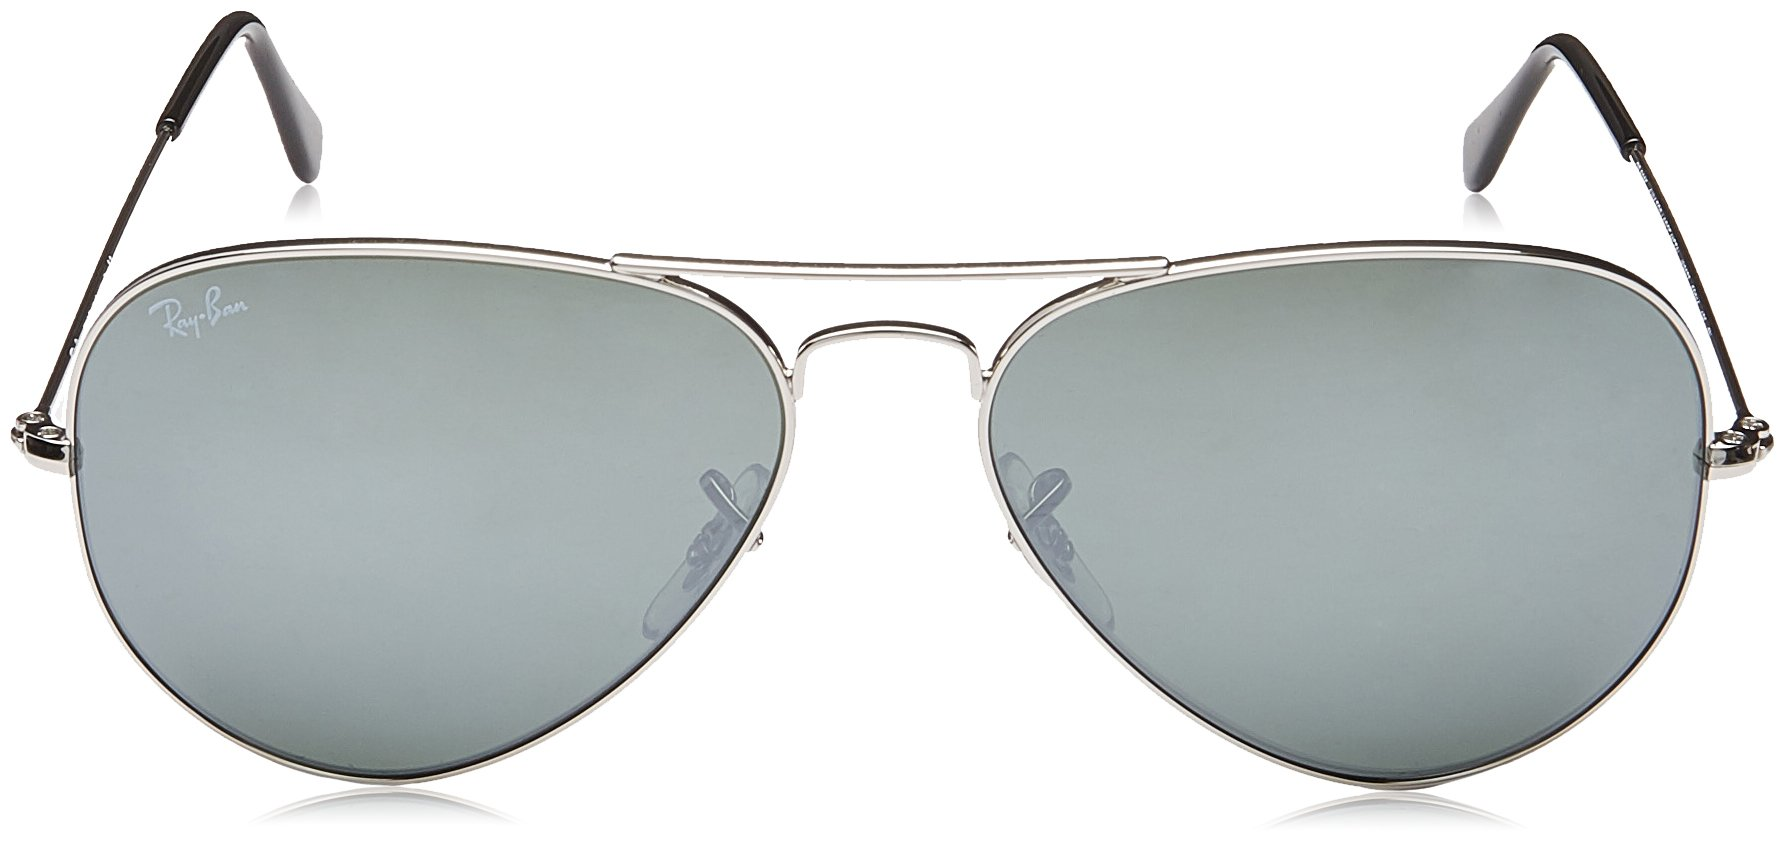 Ray-Ban 3025 Aviator Large Metal Mirrored Non-Polarized Sunglasses, Silver/Silver Mirror (W3277), 58mm by Ray-Ban (Image #2)